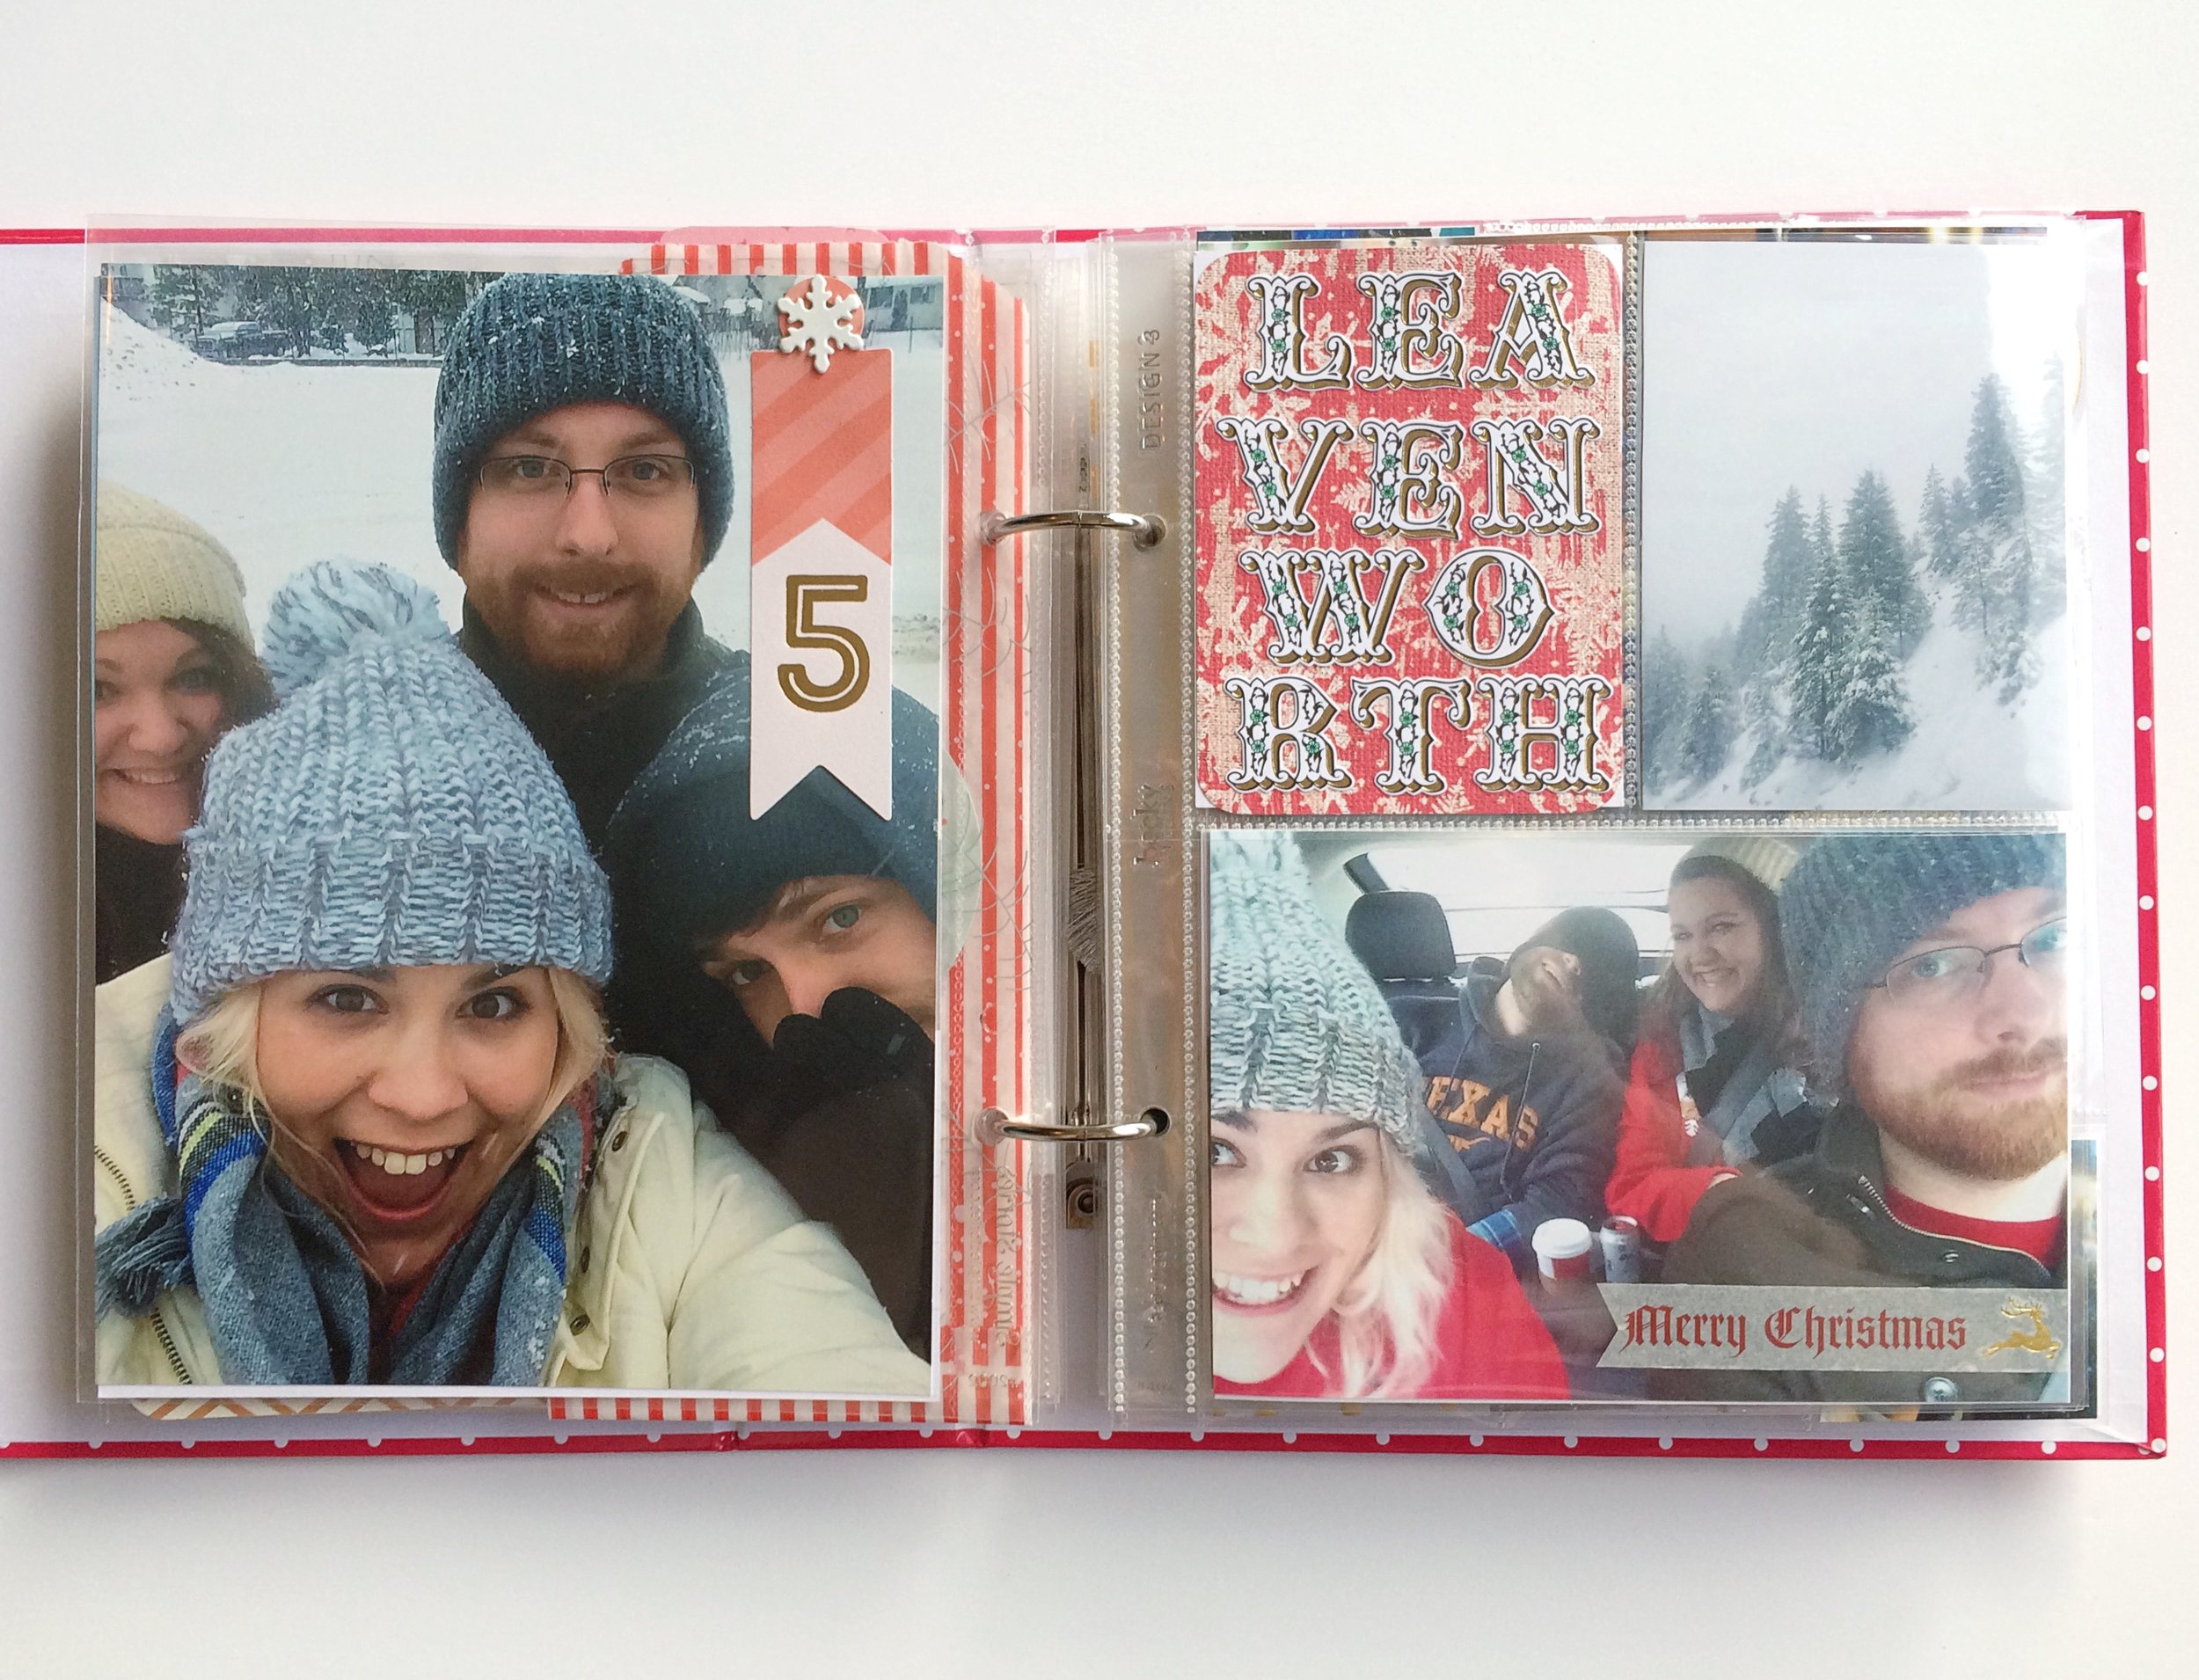 Day 5 is all about a day trip to Leavenworth, WA and all of the excitement of finally seeing some snow!